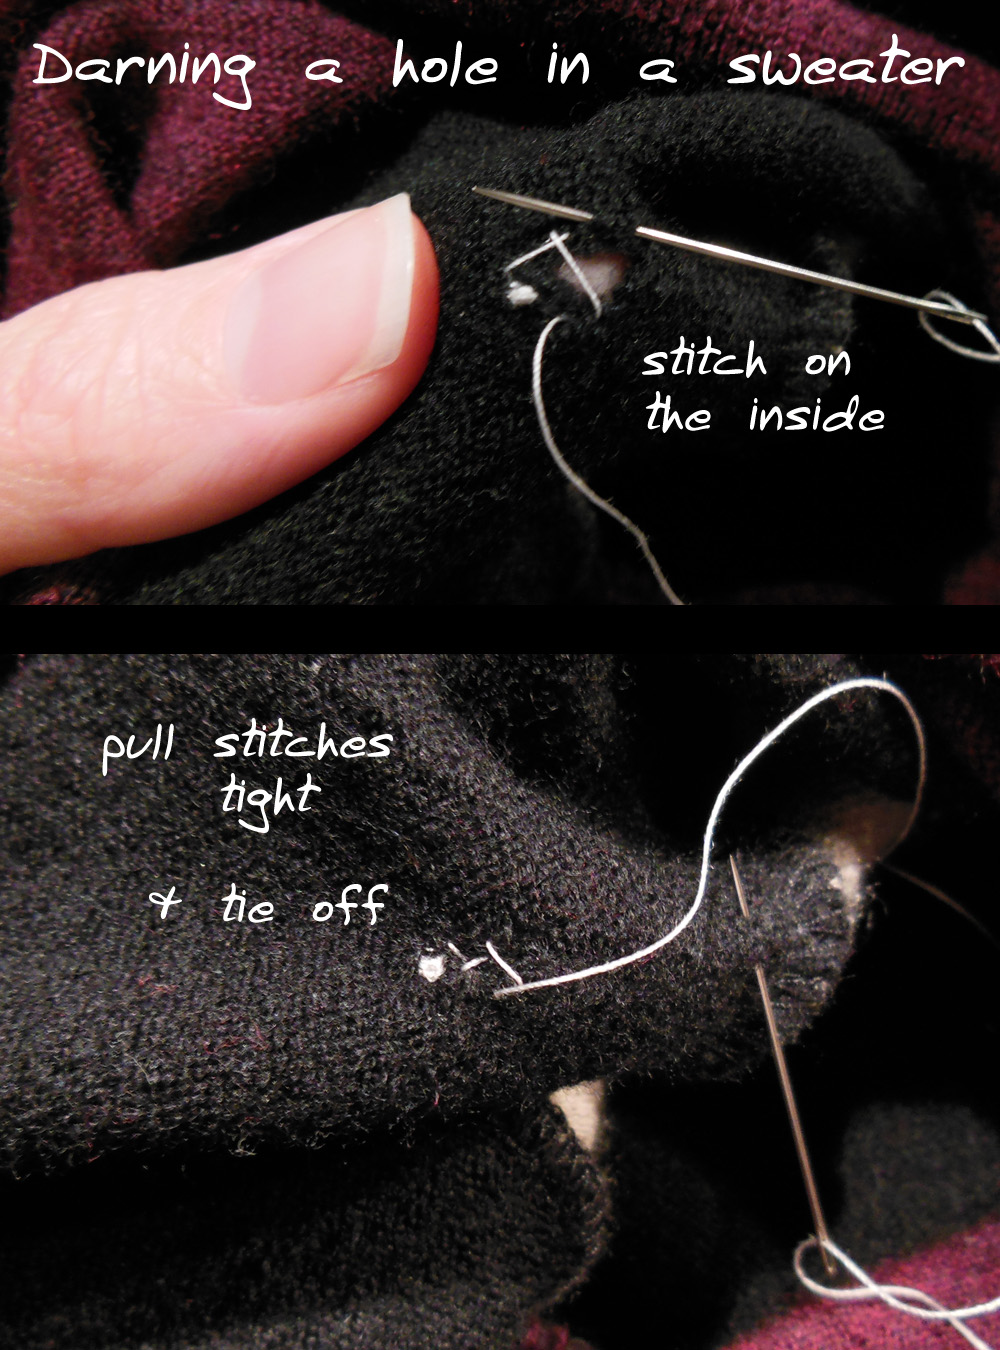 how to mend a hole in a sweater